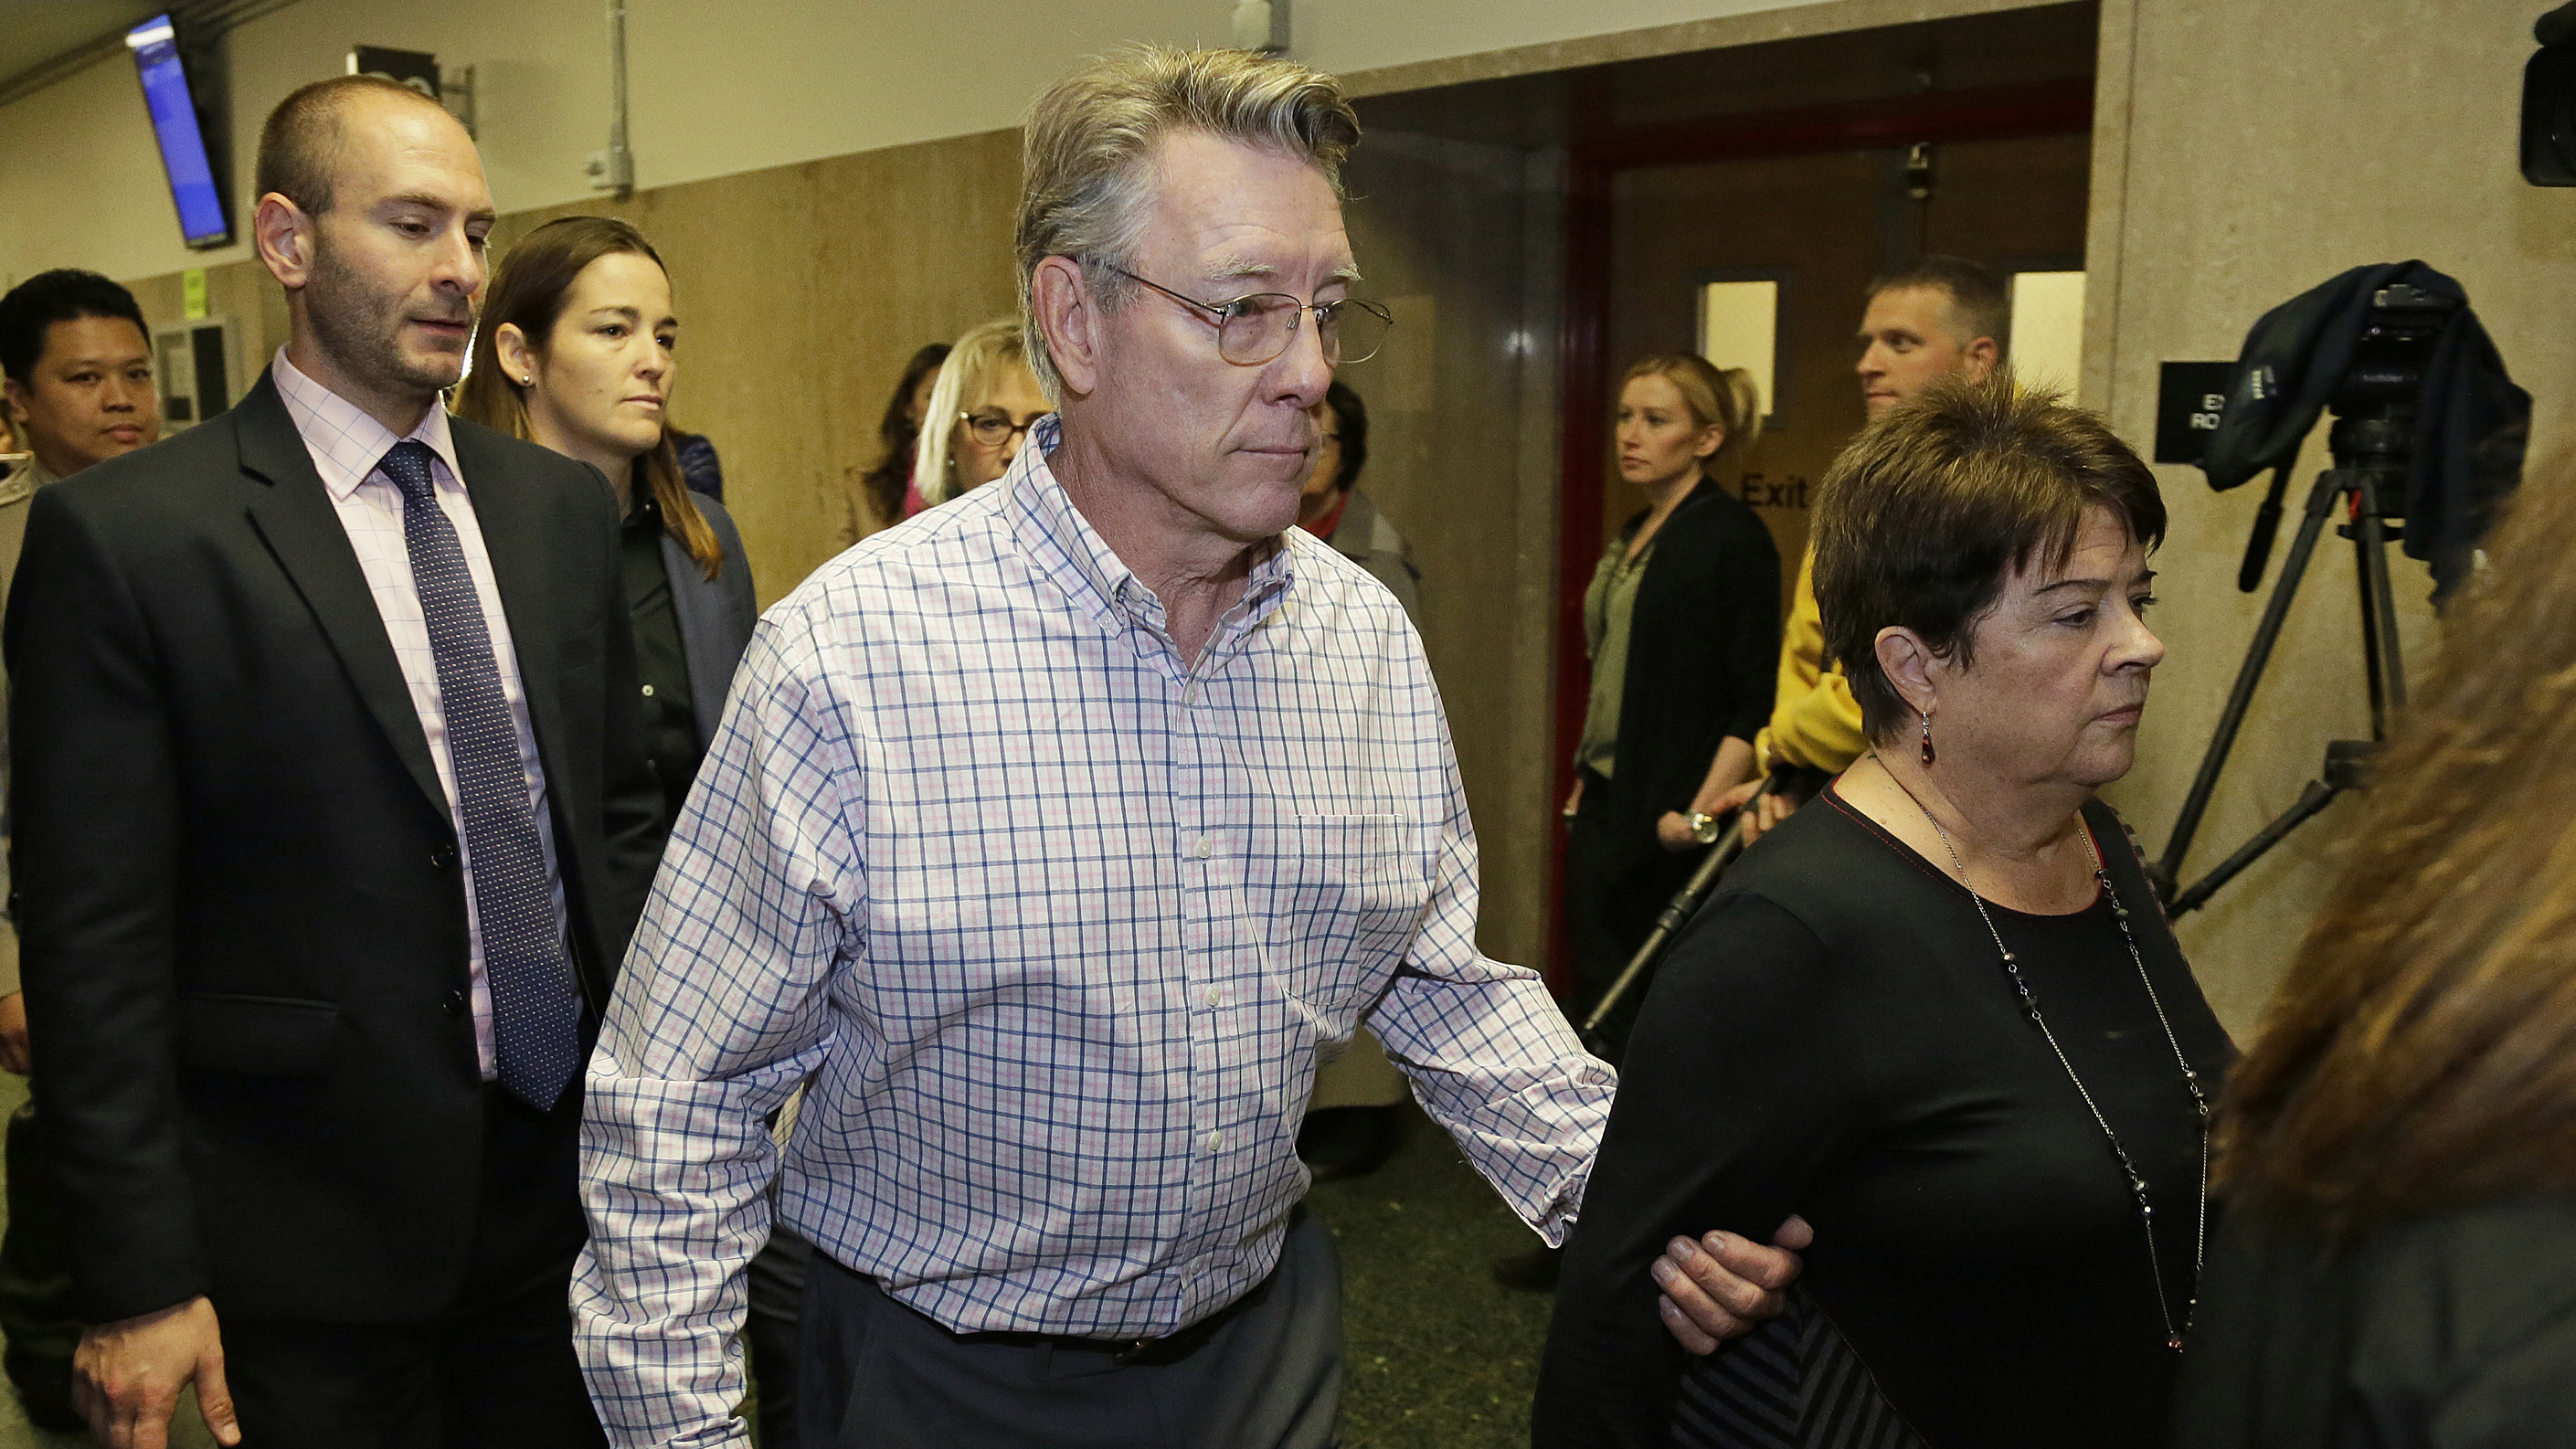 Kate Steinle's parents Jim Steinle and Liz Sullivan walk to a courtroom for closing arguments in the trial on Nov. 20